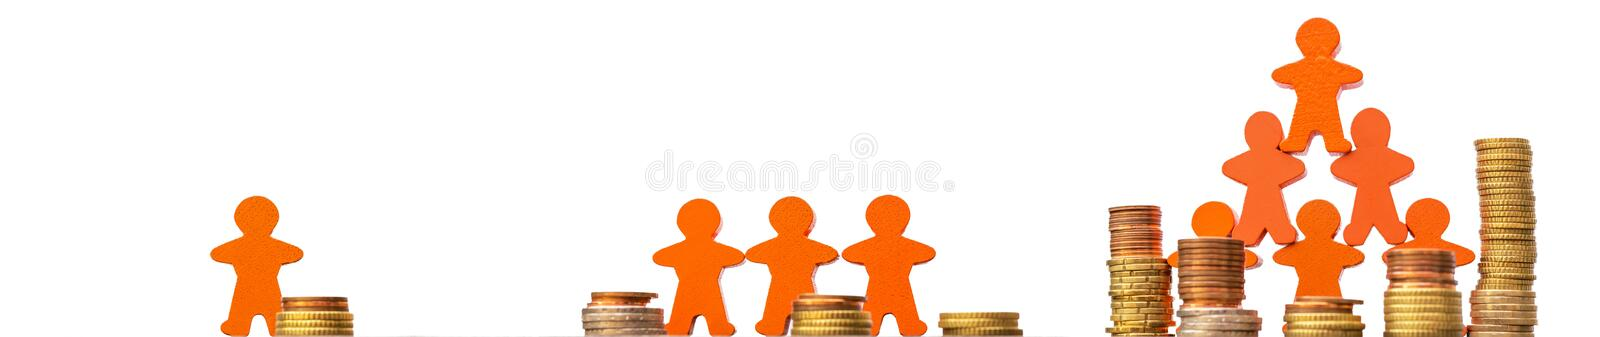 Crowdfunding as a way of financing business ideas presented with coins and wooden figures in front of a white background in the pa stock photo